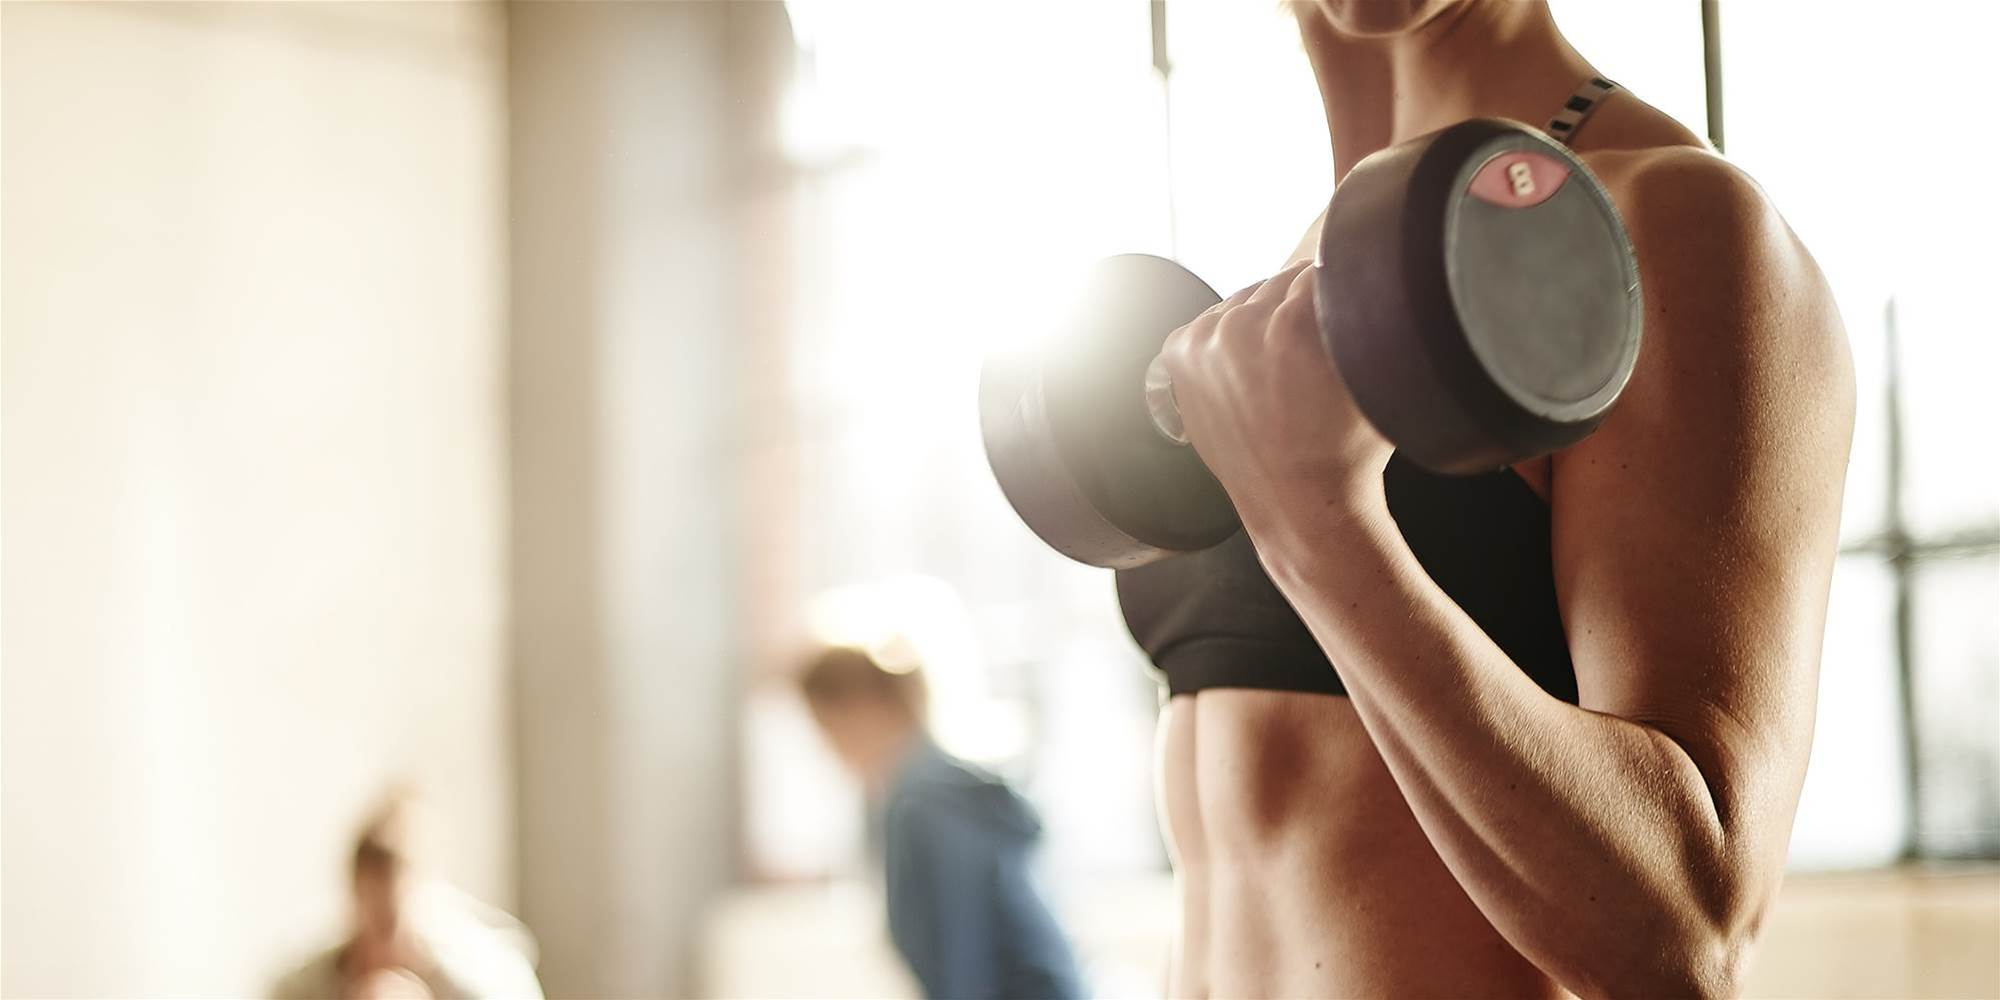 7 Incredible Benefits of Lifting Weights That Have Nothing to Do With Building Muscle